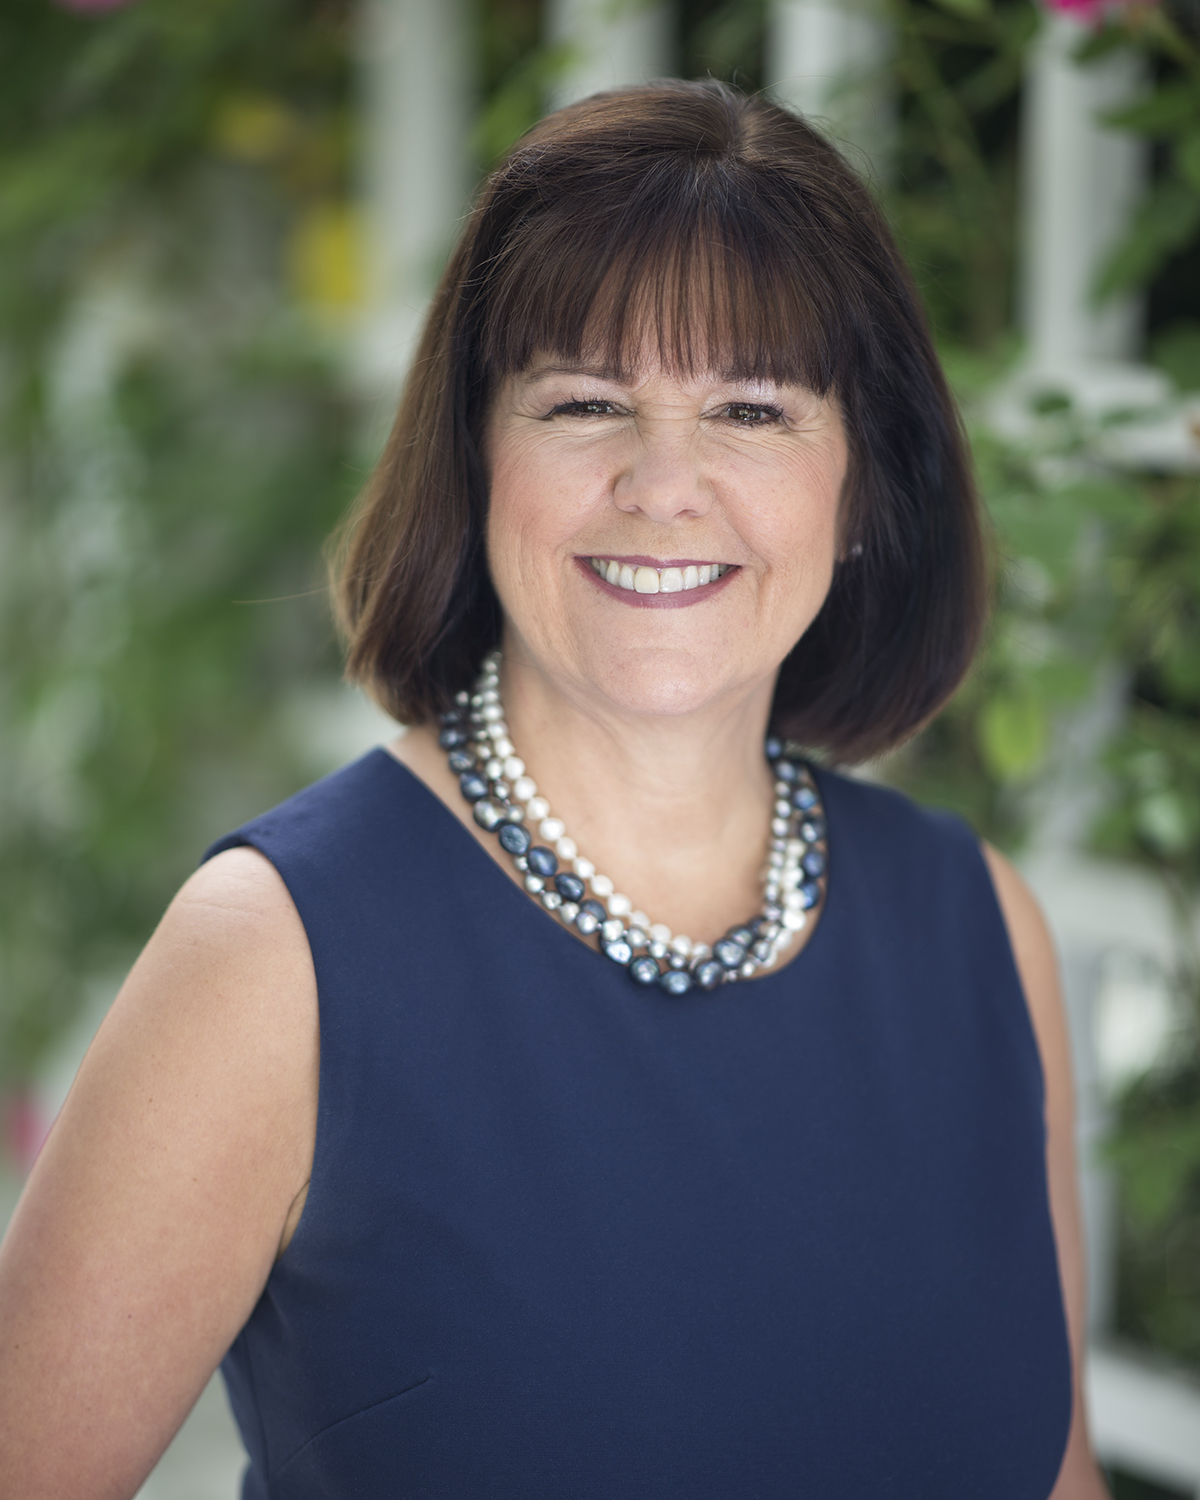 Official Portrait of the Second Lady of the United States, Mrs. Karen Pence. (Official White House Photo by Allaina Parton)